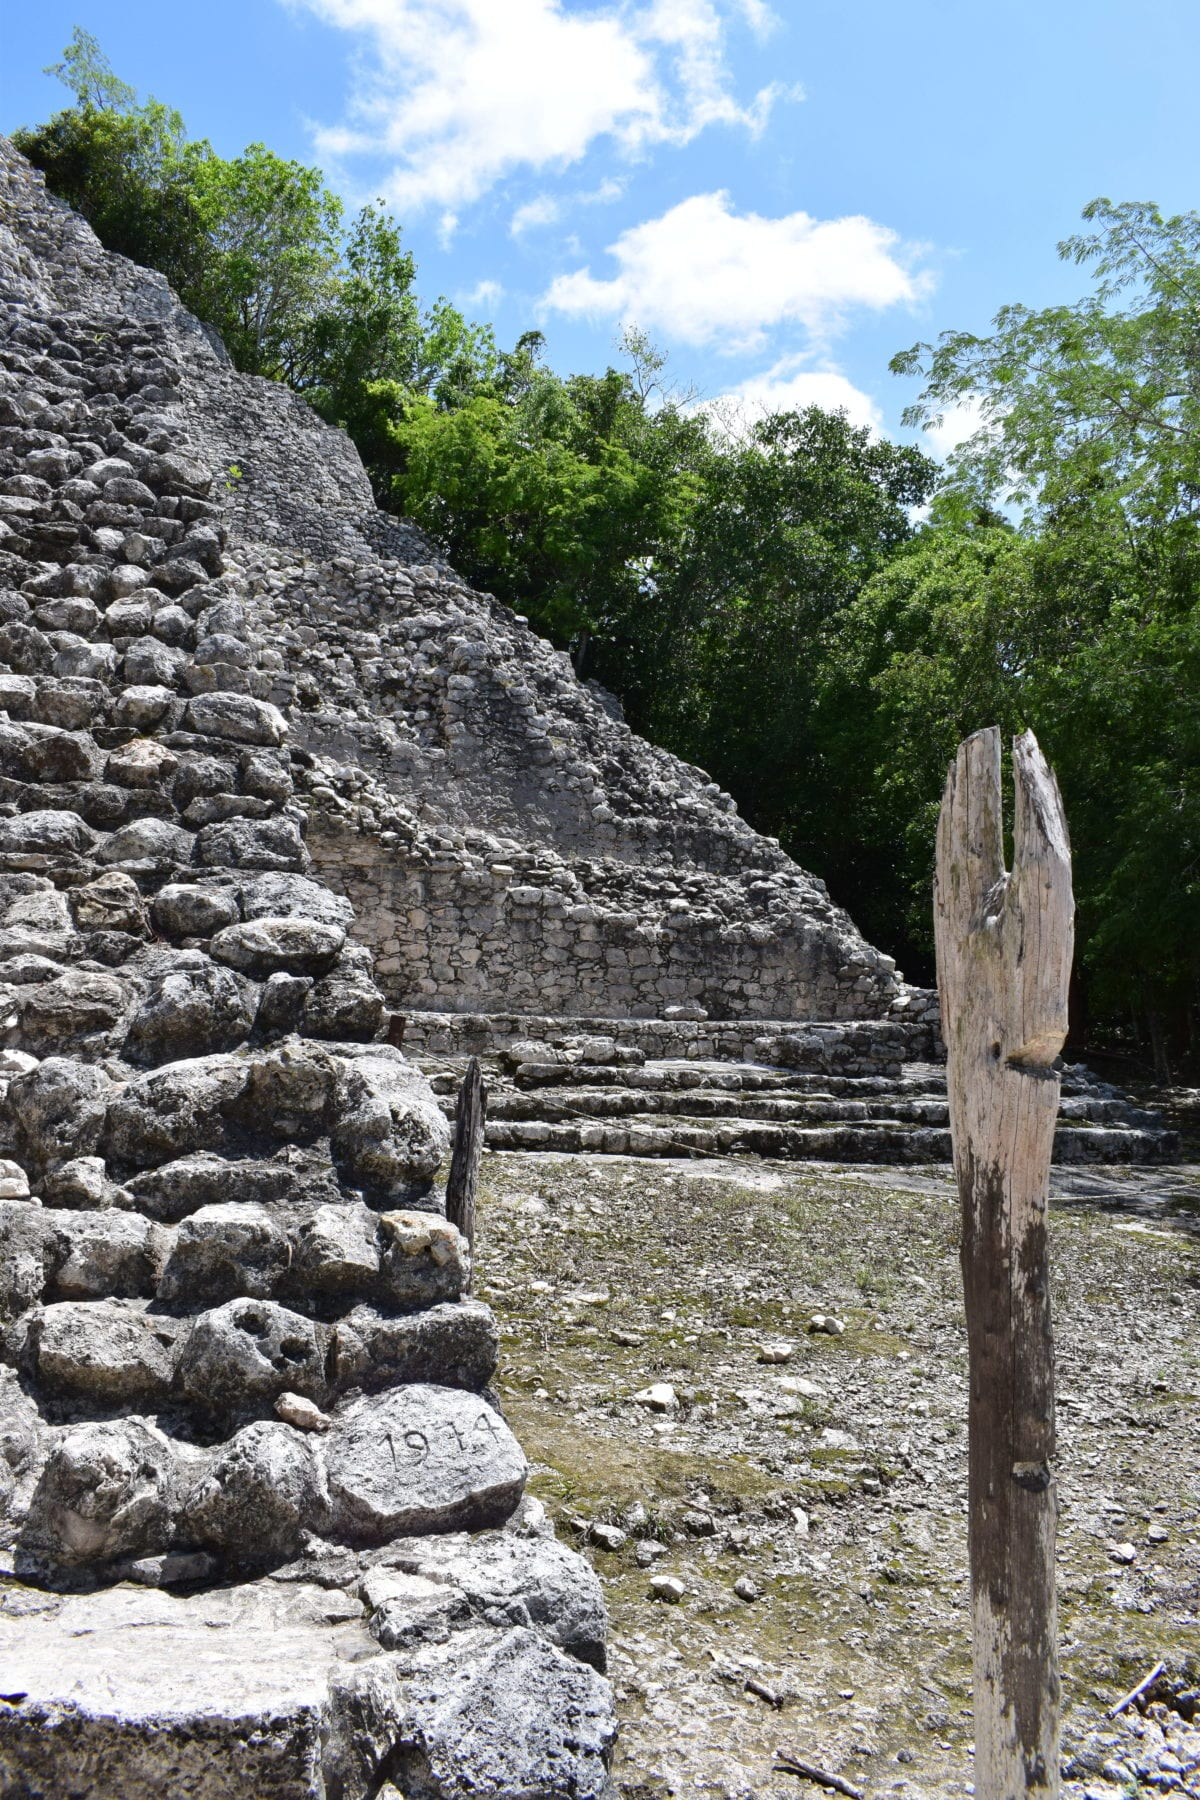 Day trip from Cancun to Coba